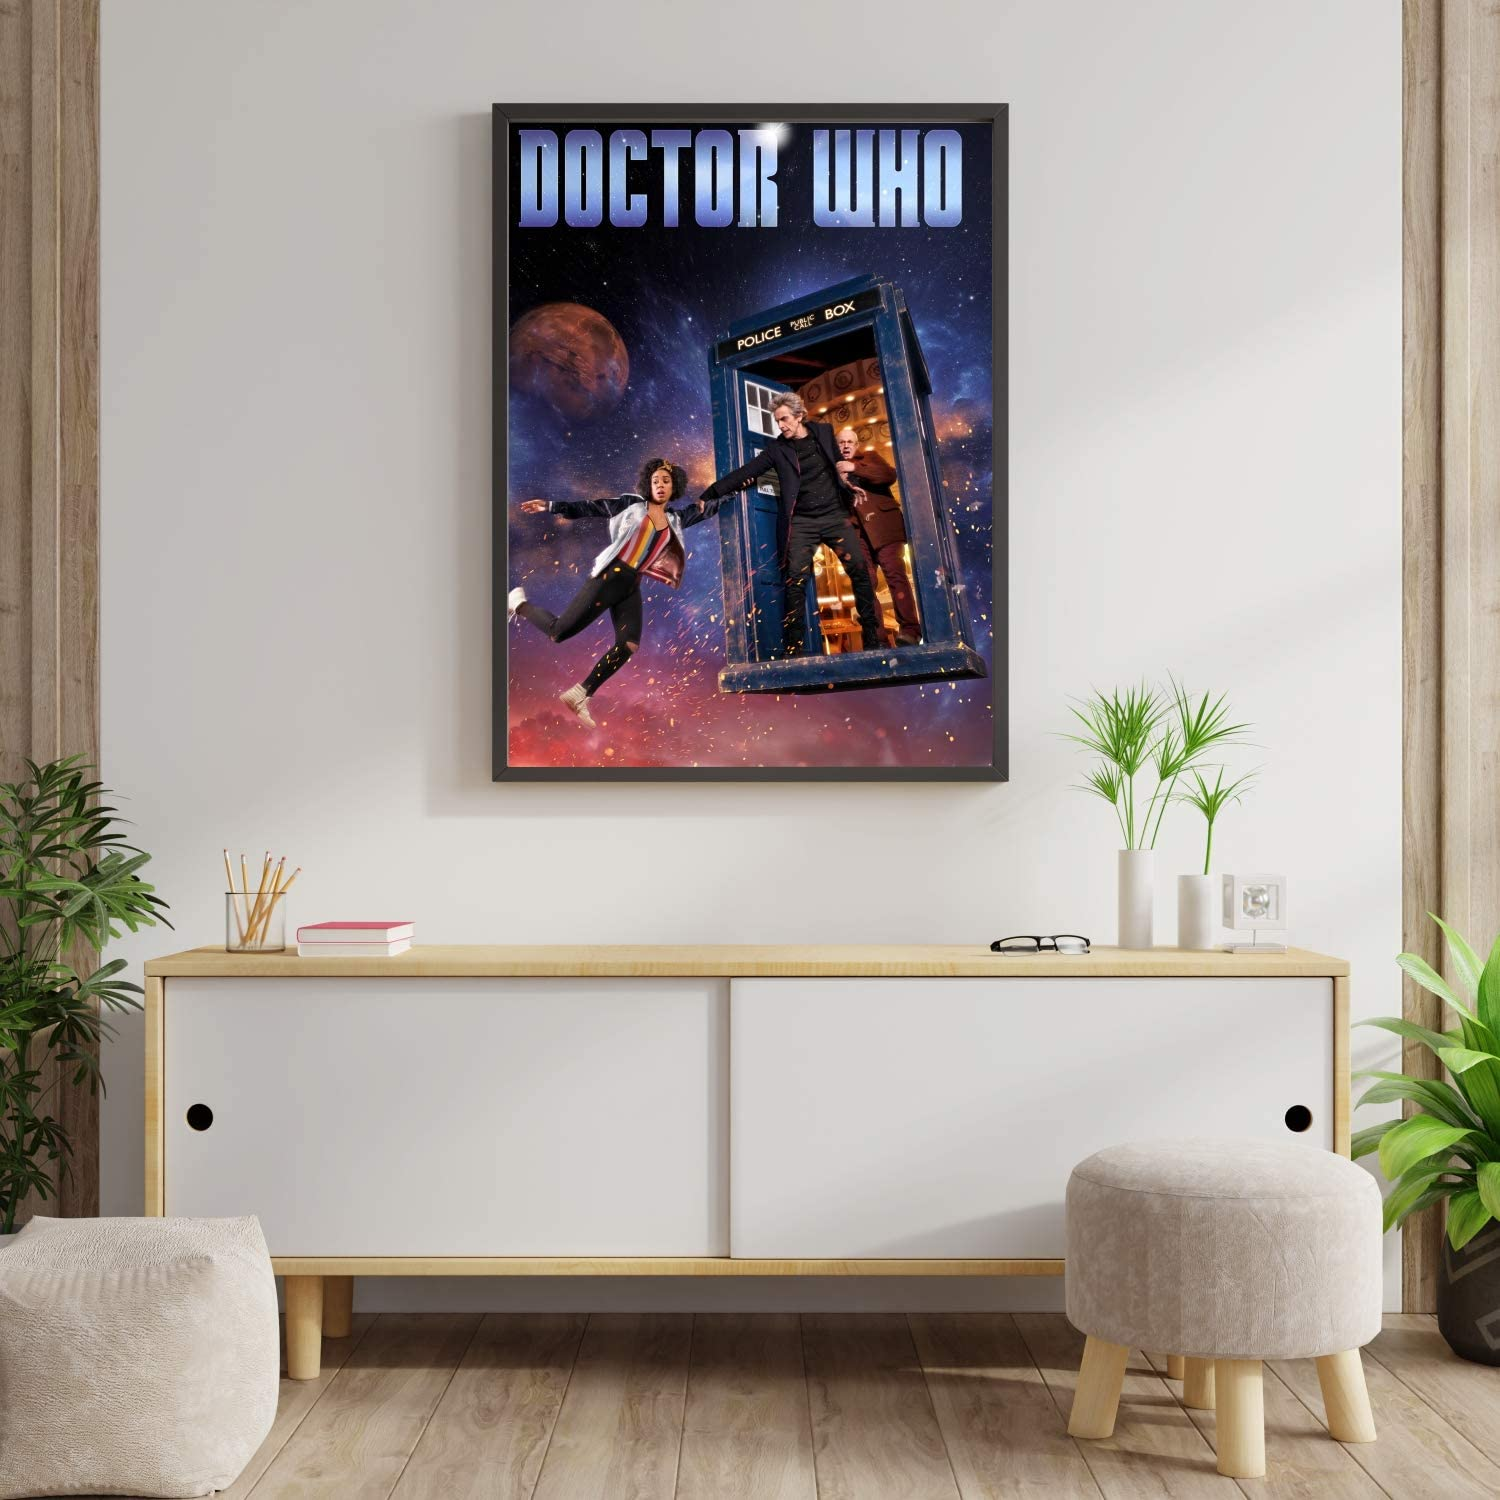 Police Box Poster Compatible with Doctor Who, Art Print, Wall Decor for Bedroom Living Room Office College Room, Great Gift Idea, Decoration Unframed Size (XL - 24